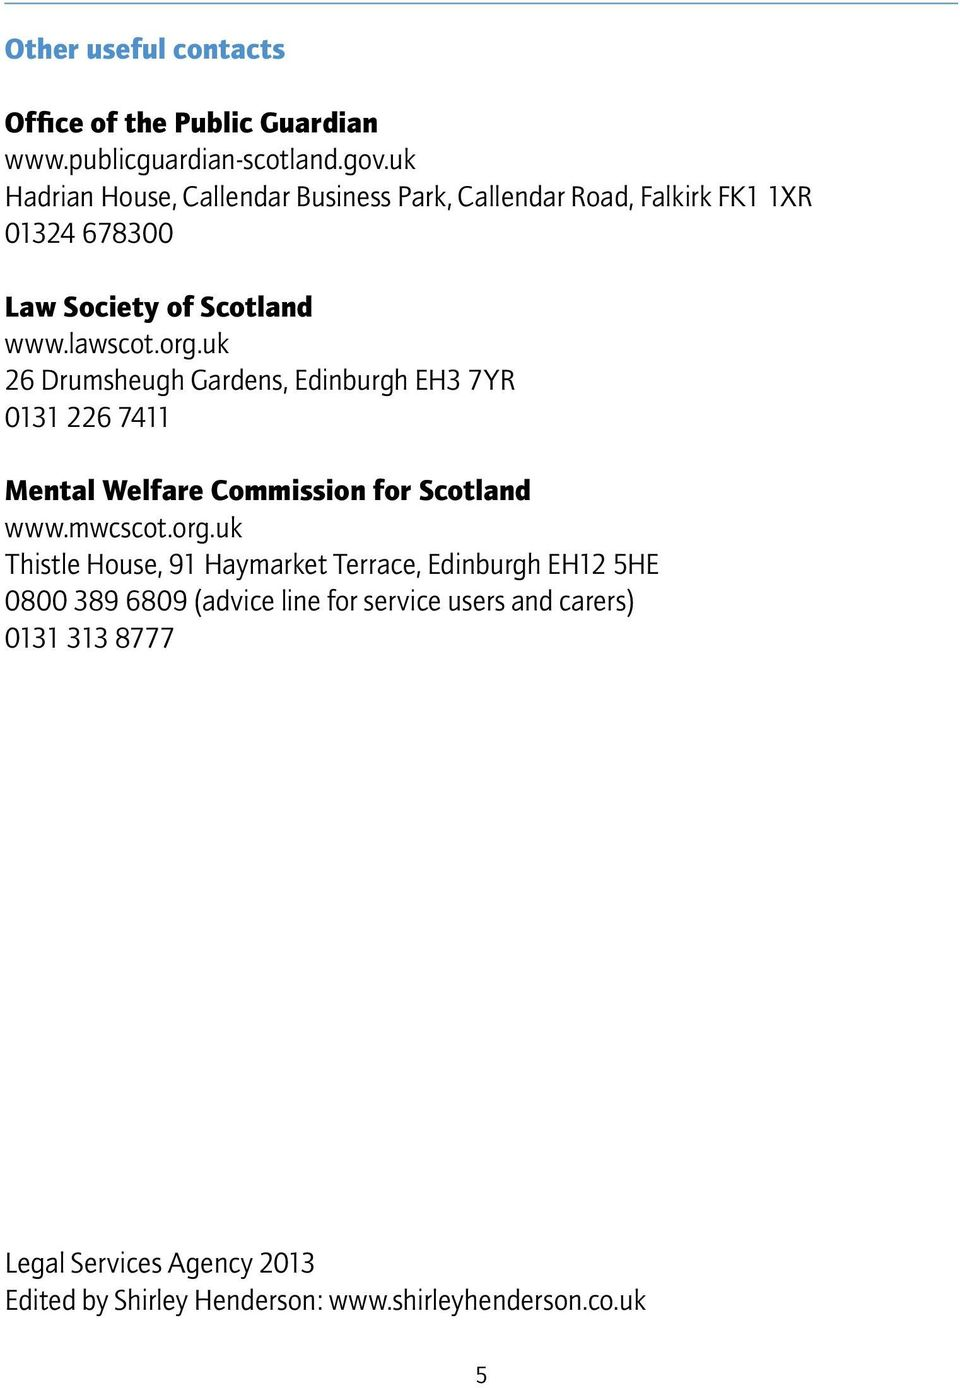 uk 26 Drumsheugh Gardens, Edinburgh EH3 7YR 0131 226 7411 Mental Welfare Commission for Scotland www.mwcscot.org.